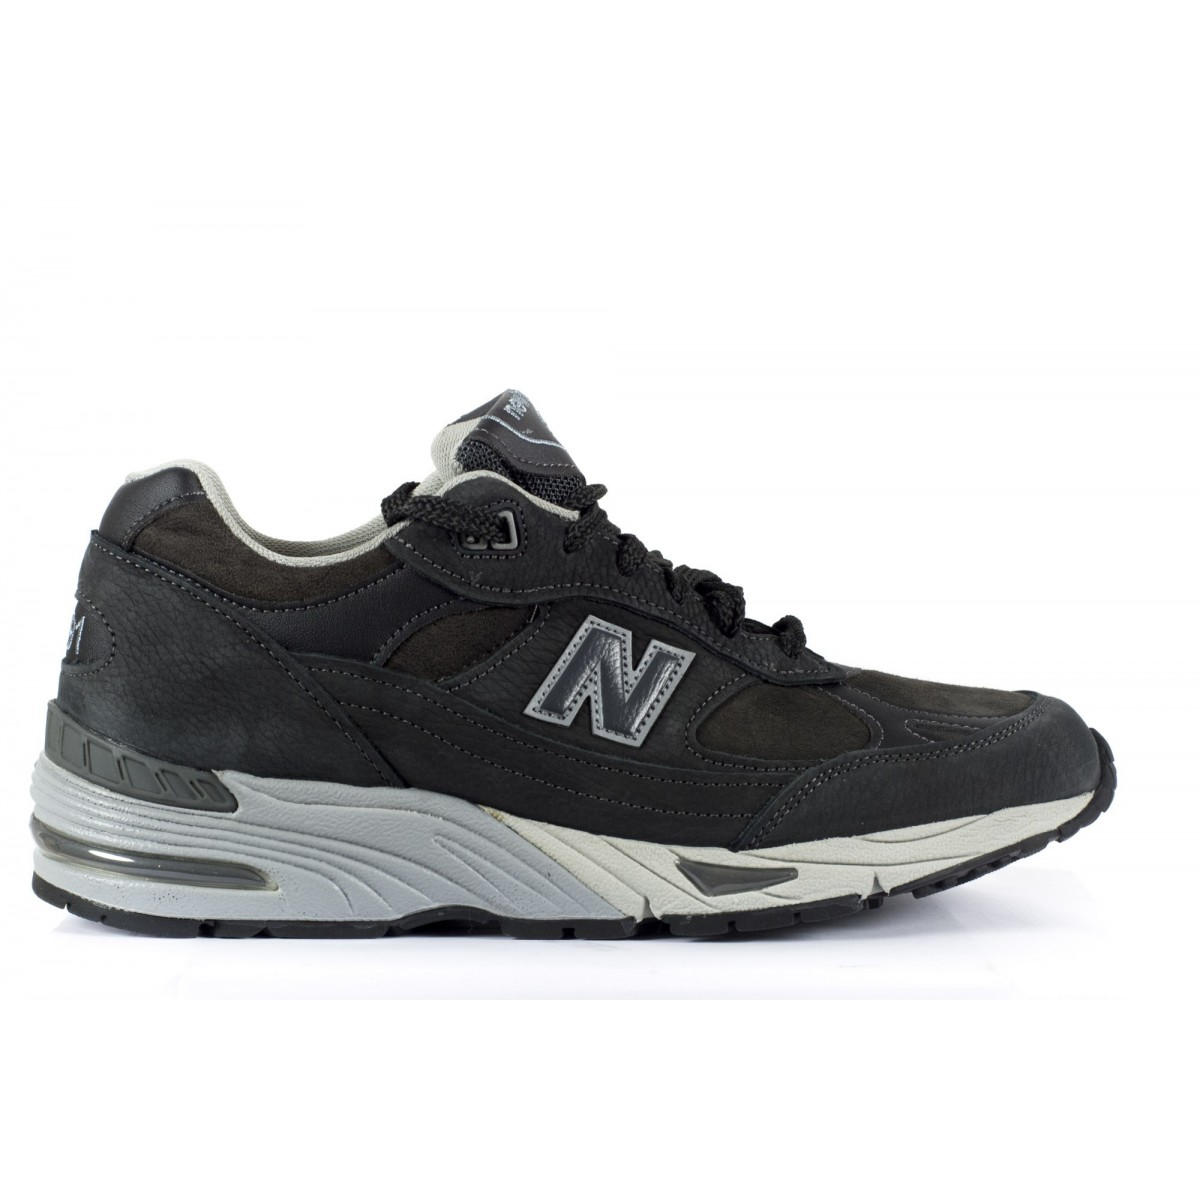 Shoes New Balance Man - 991 Nabuk Made In Uk NDG - Antracite